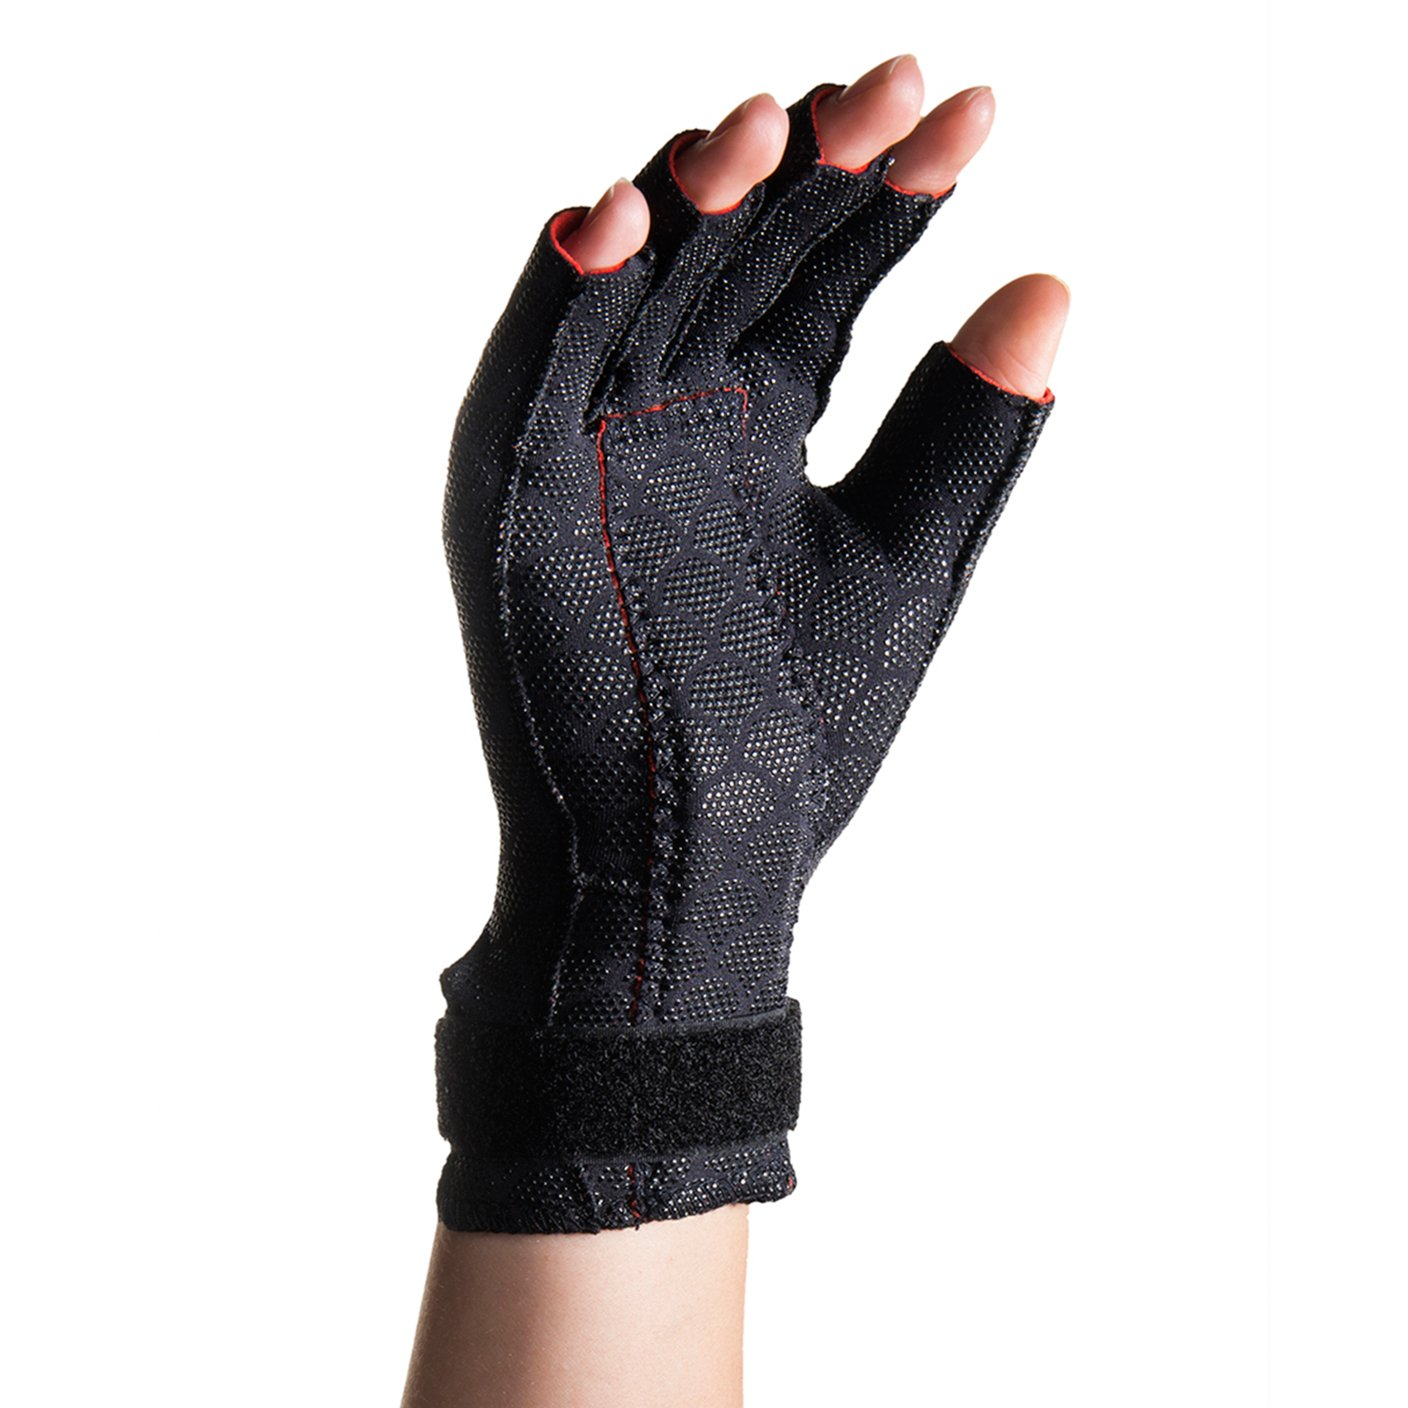 Motorcycle gloves carpal tunnel syndrome - Amazon Com Thermoskin Carpal Tunnel Glove Location Left Size Small Health Personal Care